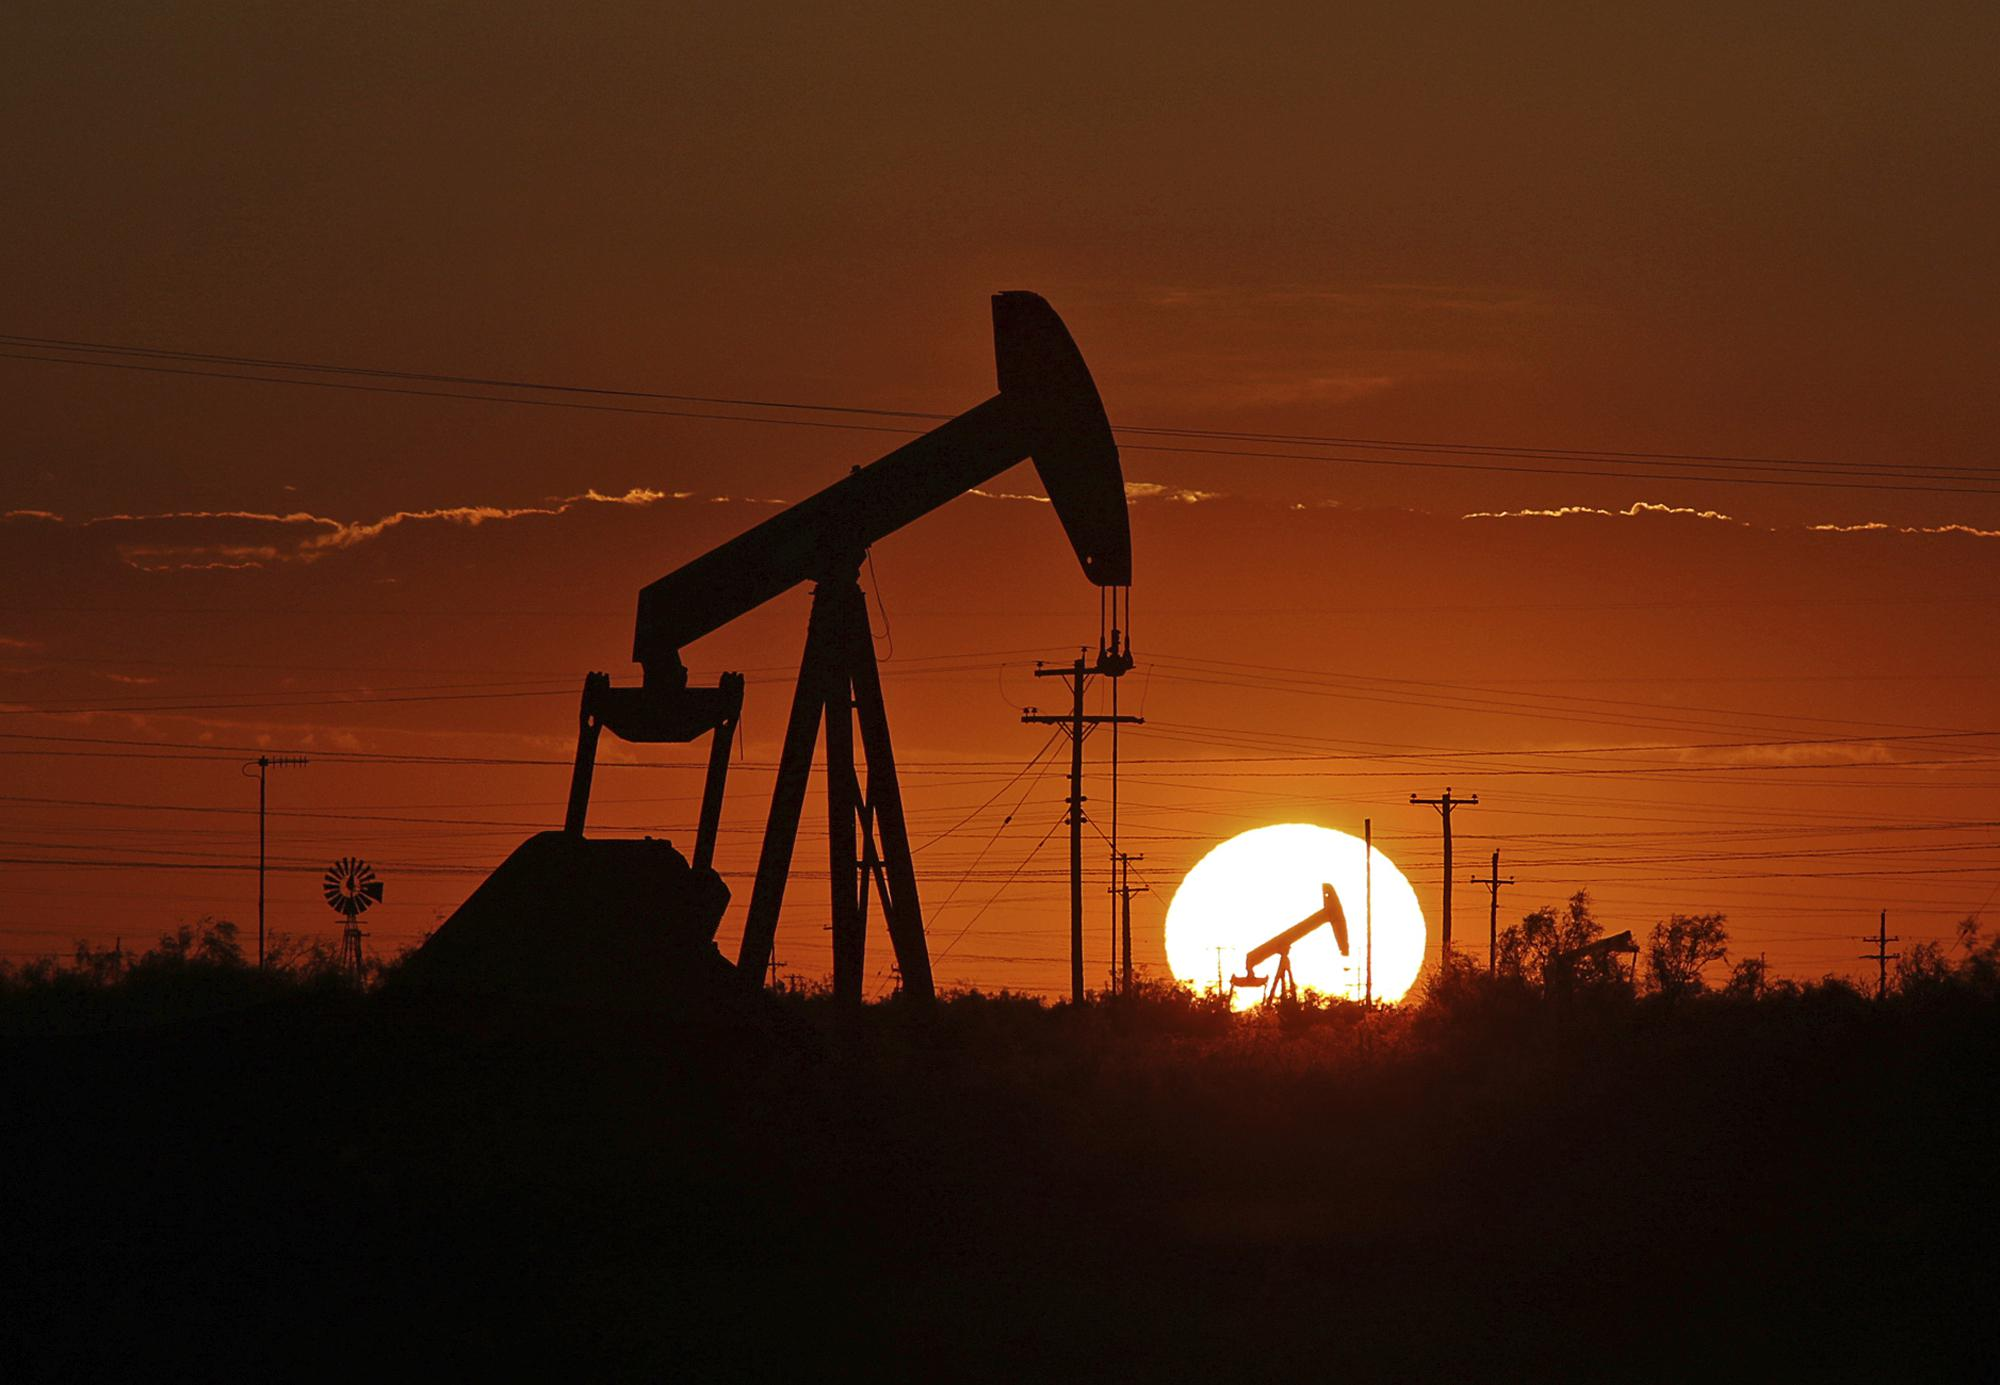 Texas shale and Silicon Valley are more alike than different